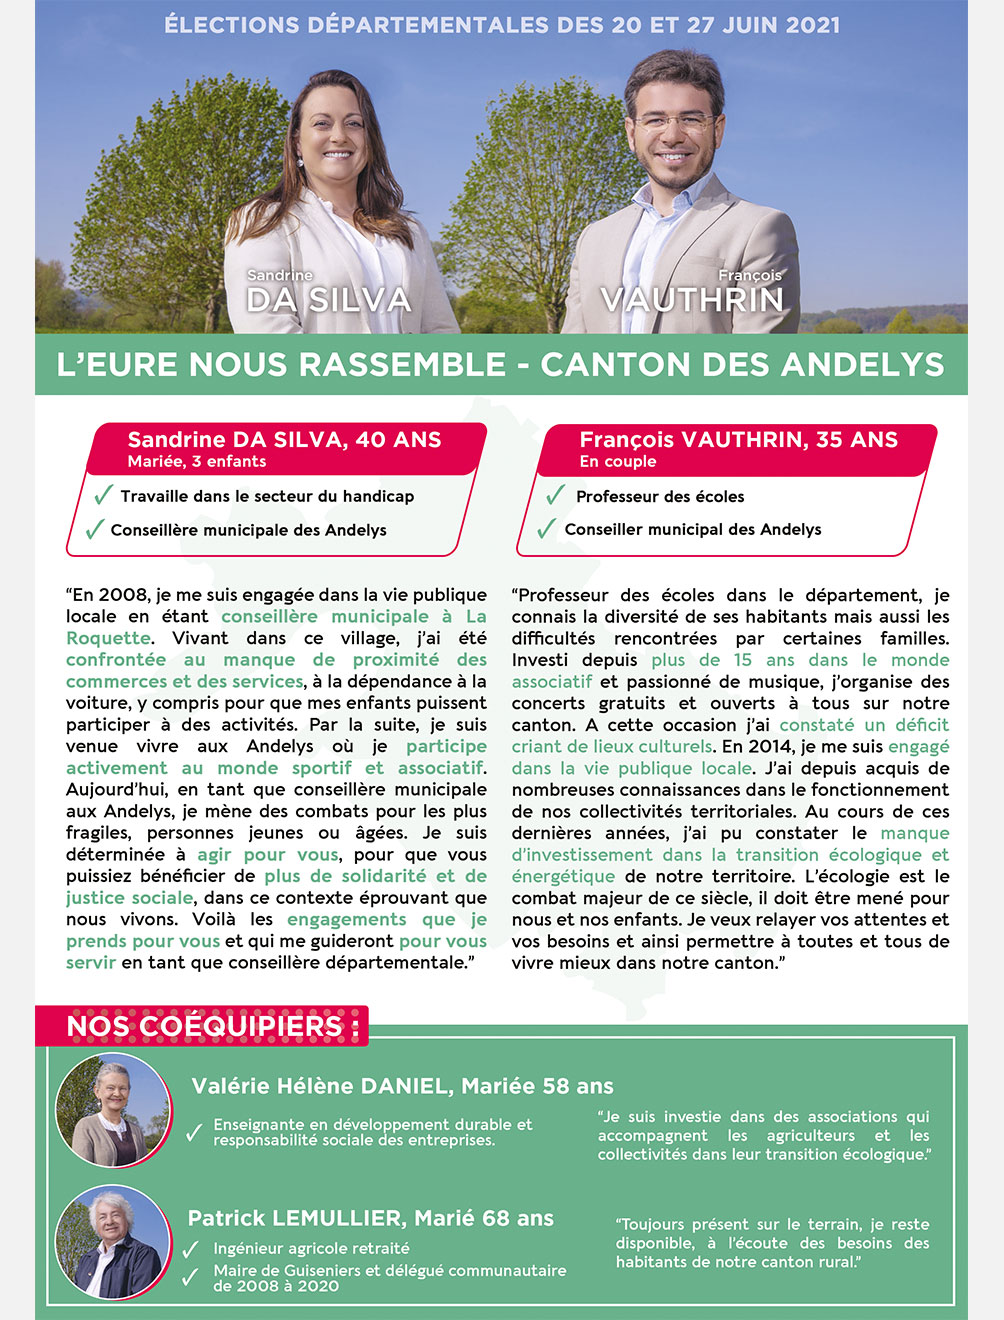 to-become-agence-communication-publicite-marketing-graphisme-digital-photos-videos-flyer